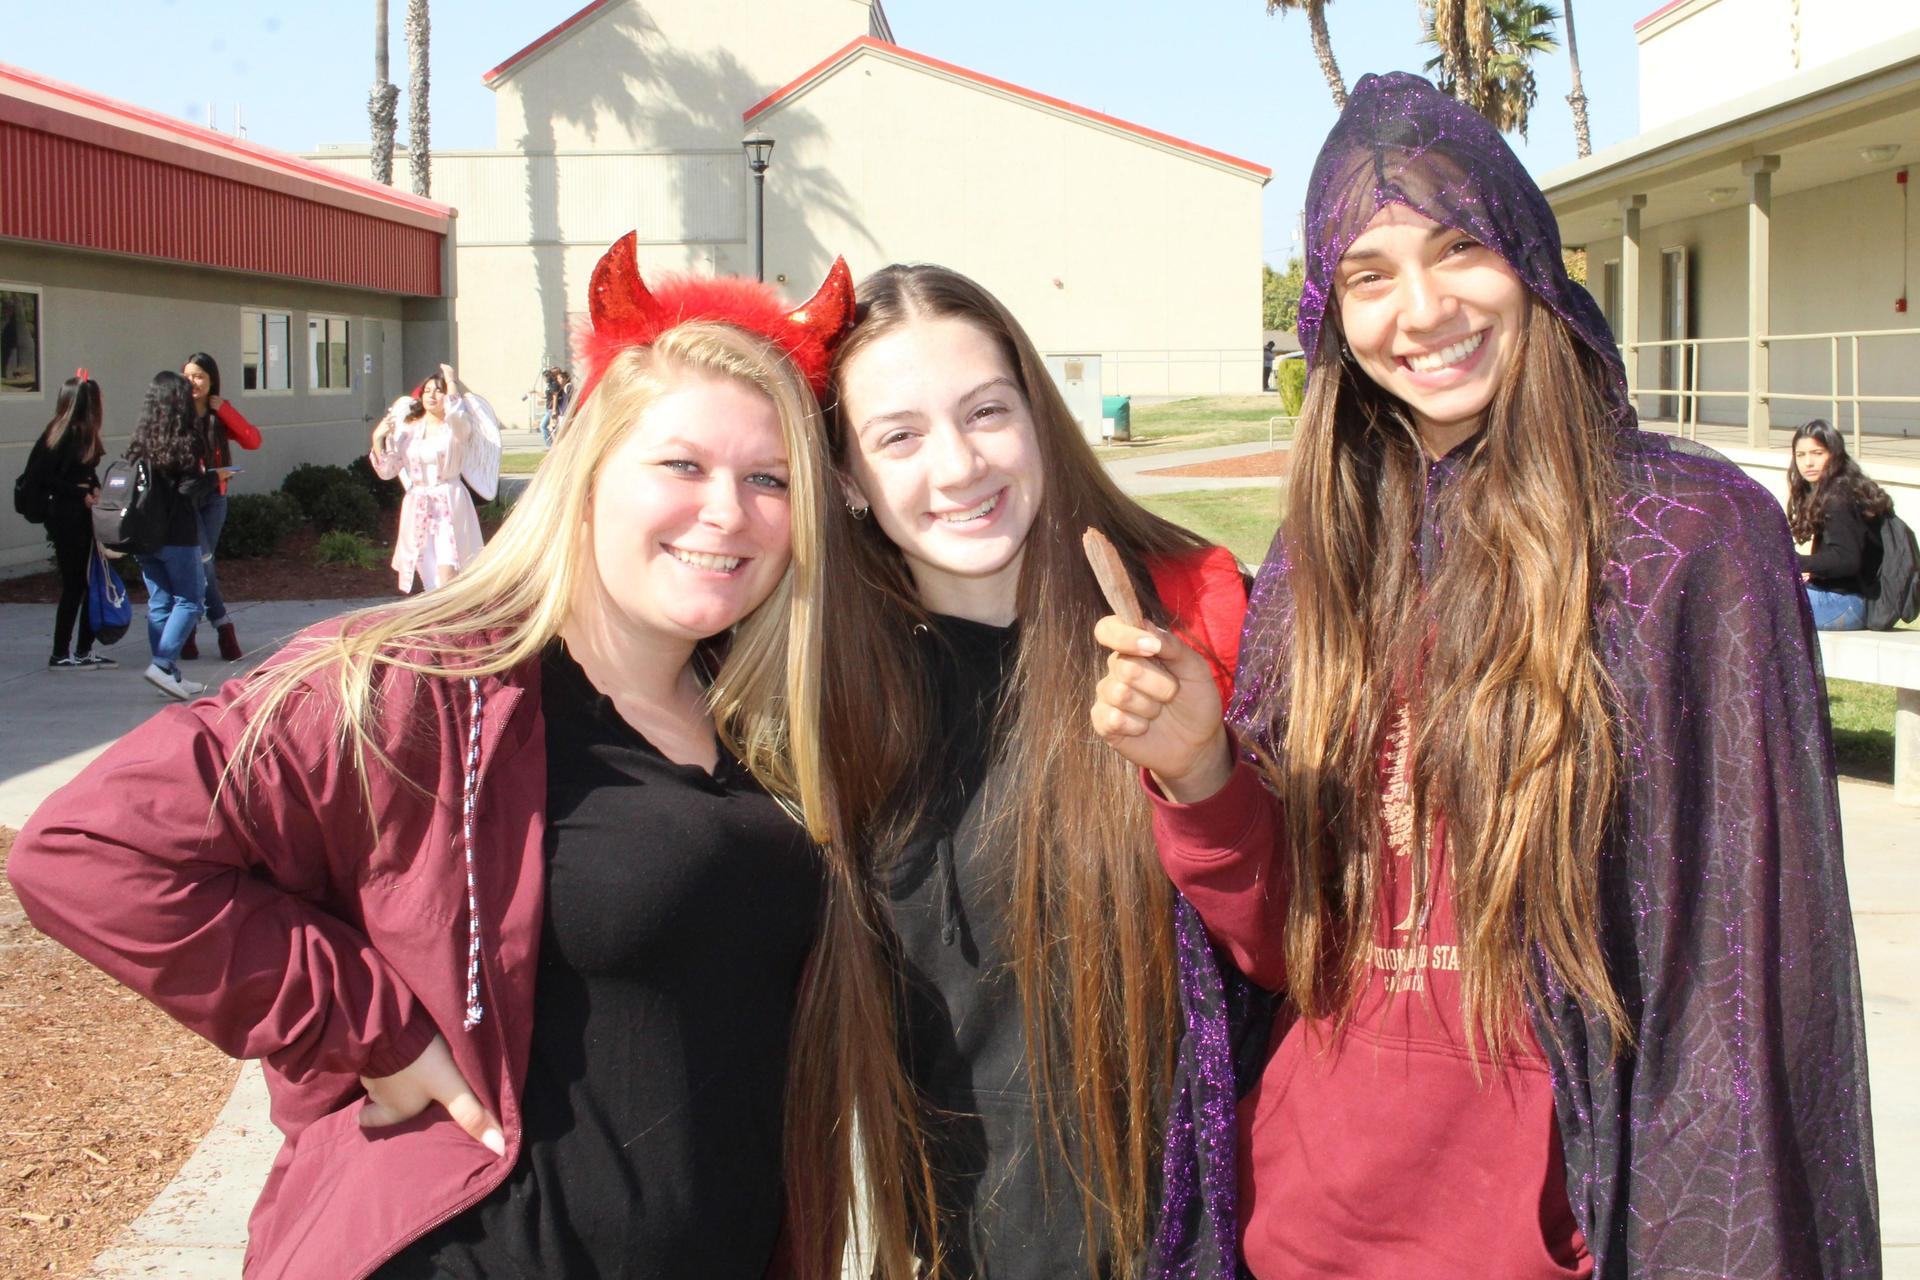 Checotah Hurt as the devil with Lilly sandlin and Josephine moore as a witch